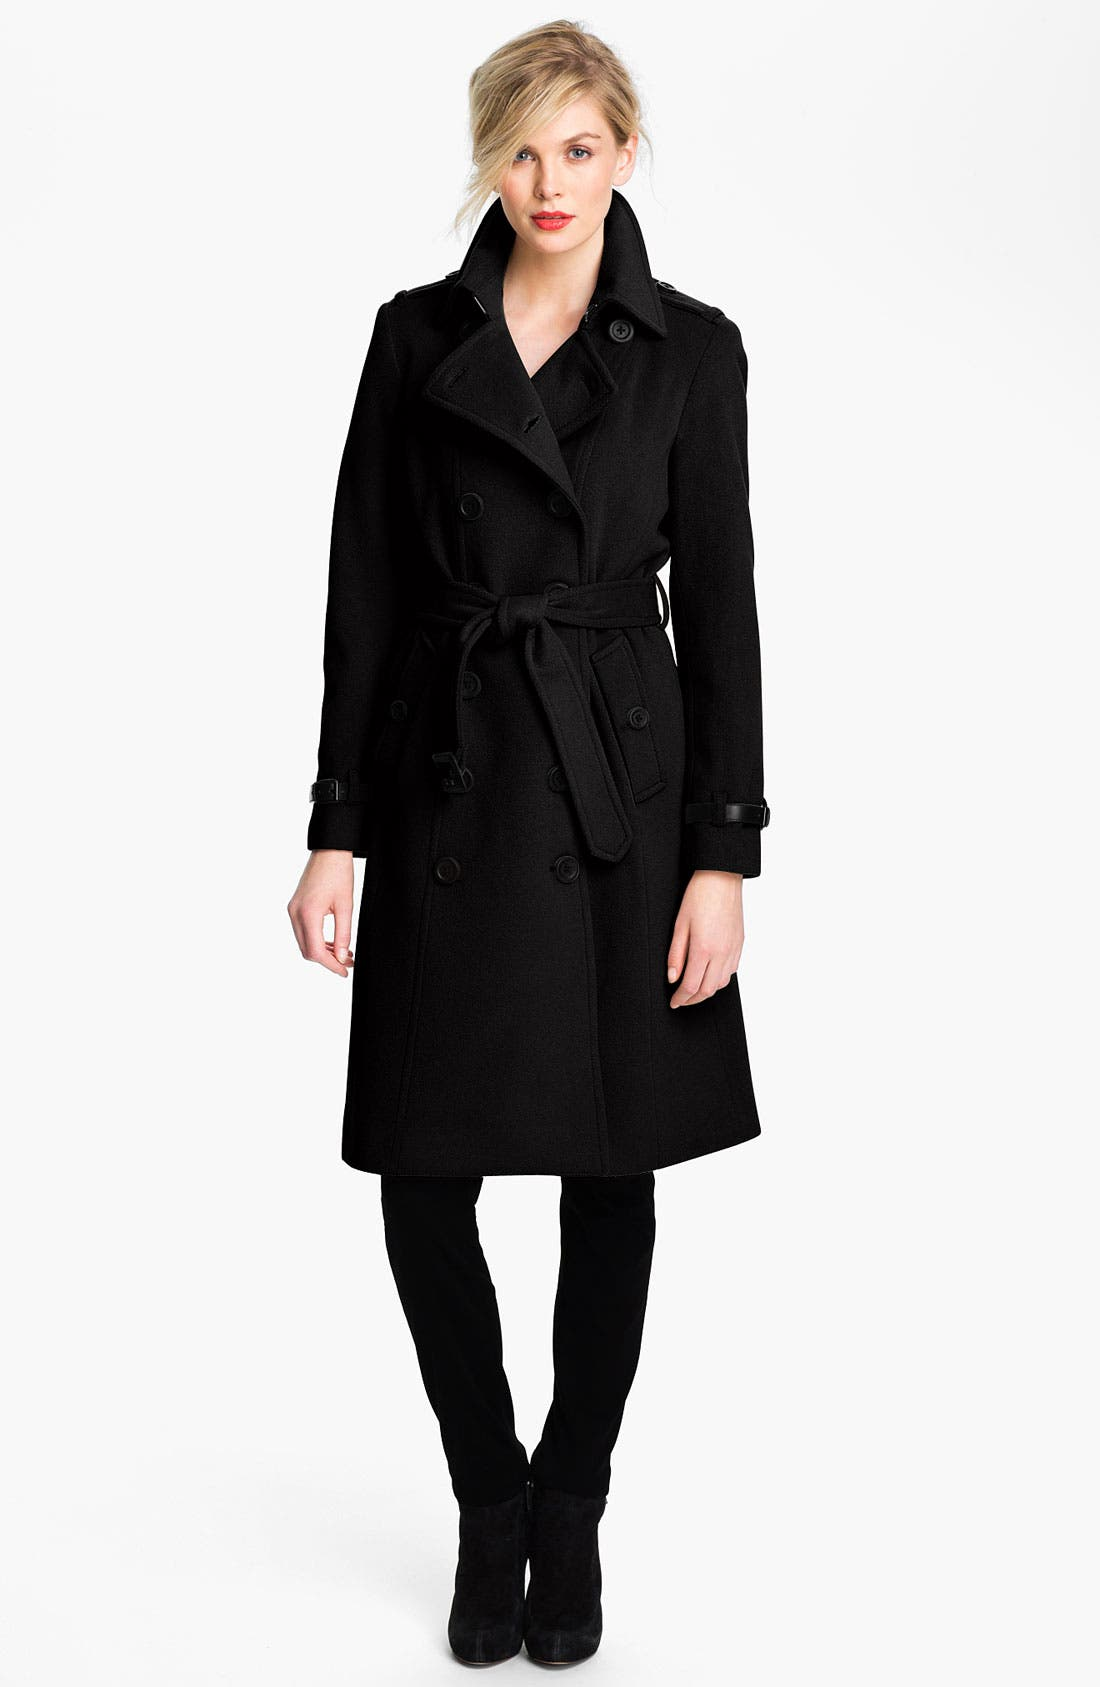 Main Image - London Fog Double Breasted Wool Blend Trench Coat (Online Exclusive)